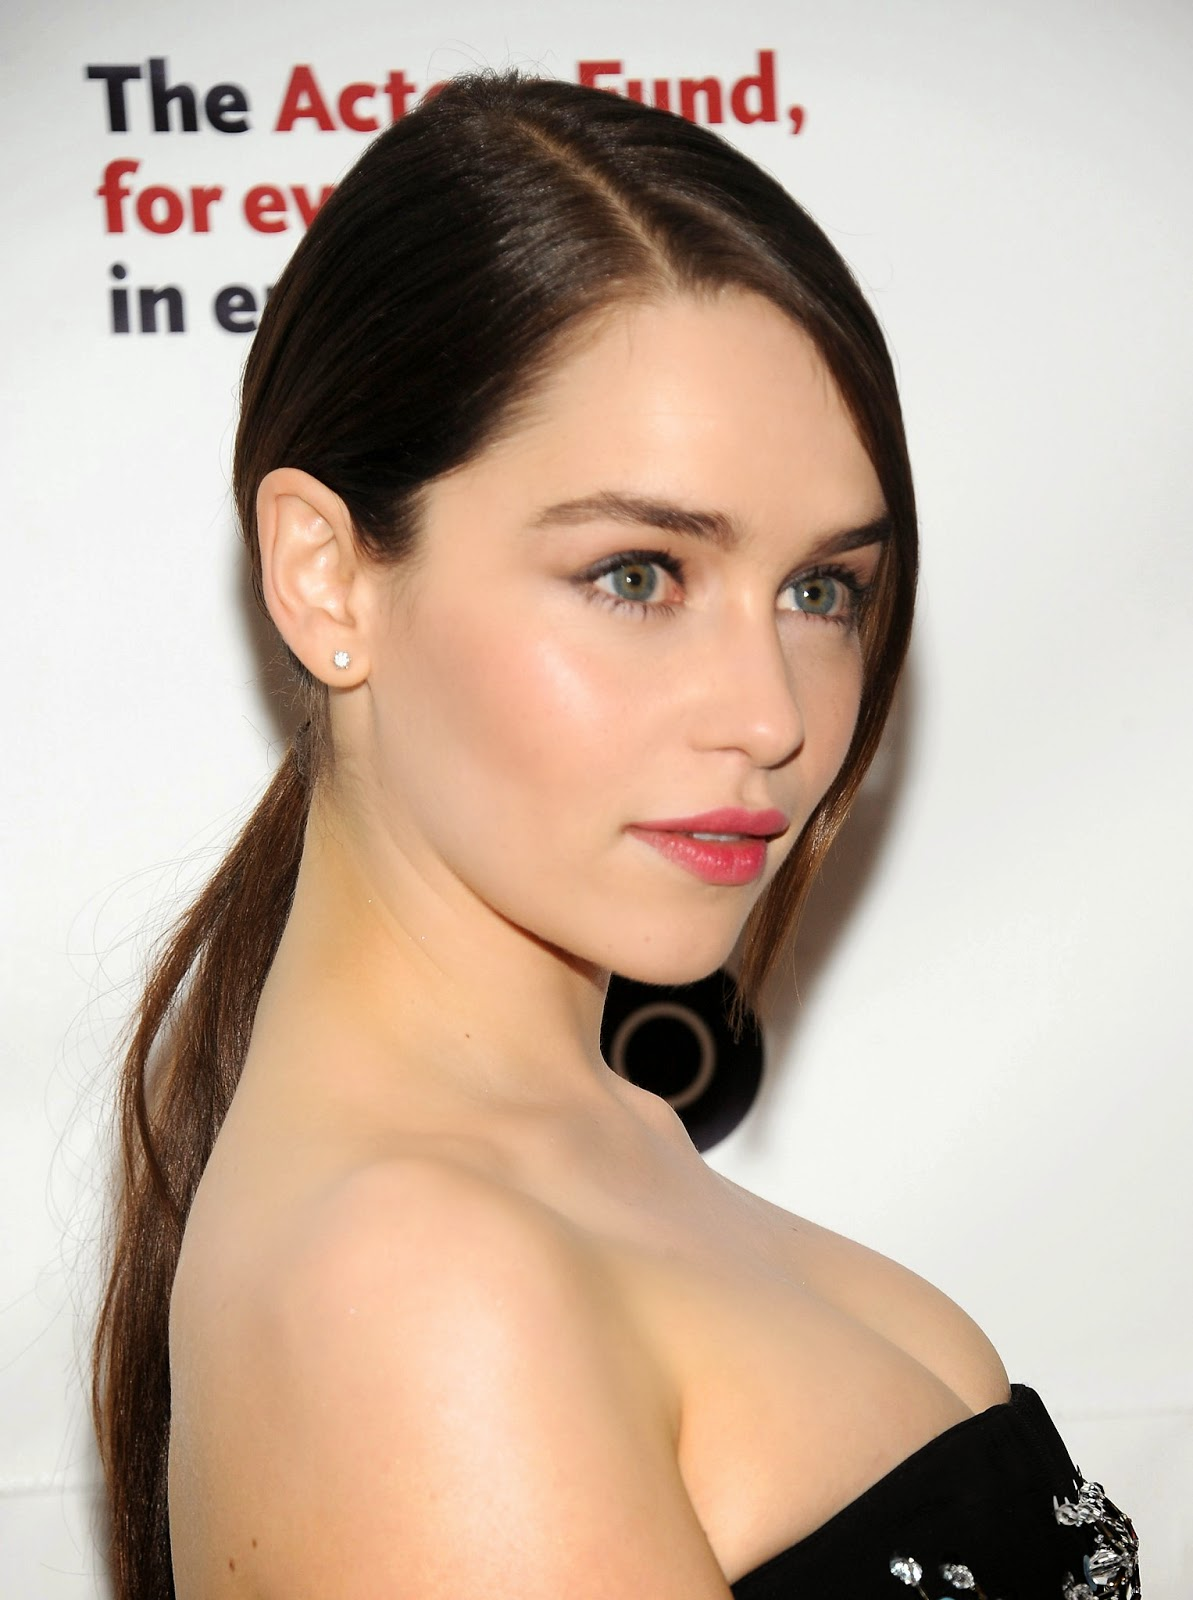 Emilia clarke hd free hot hollywood actress wallpaper